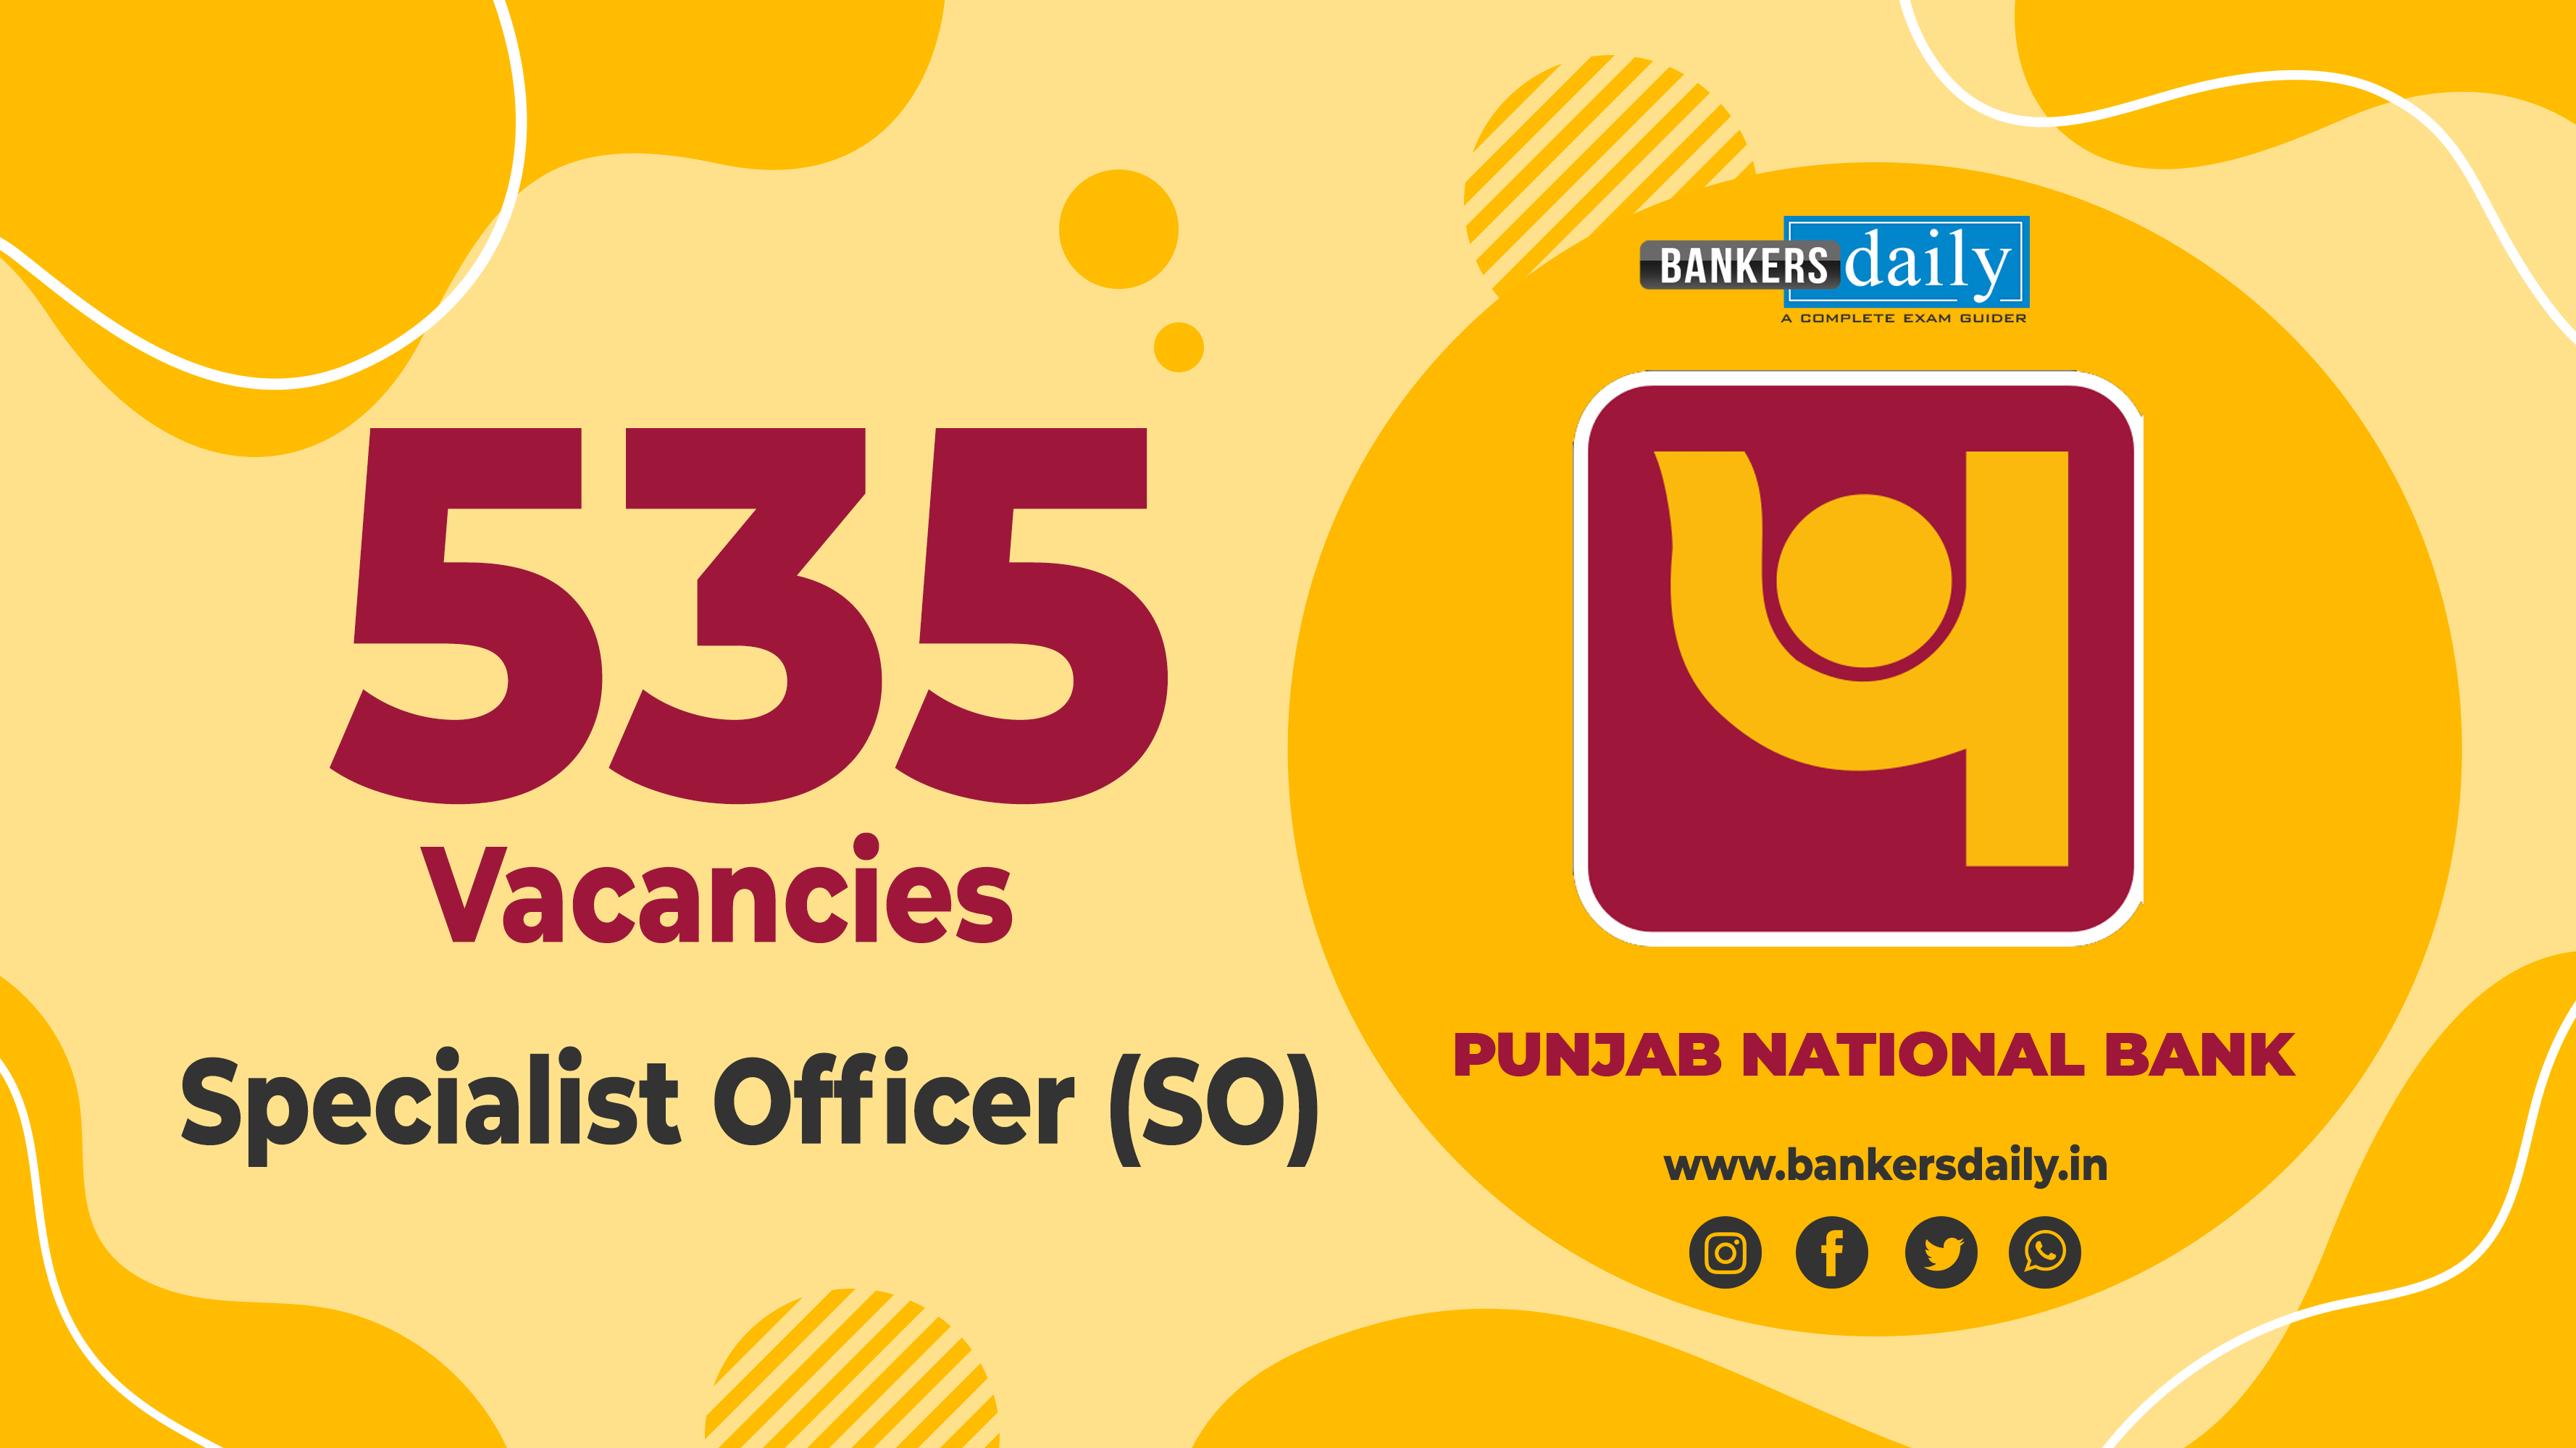 Punjab National Bank Specialist Officer (SO) Recruitment 2020 - 535 Vacancies - Check Now